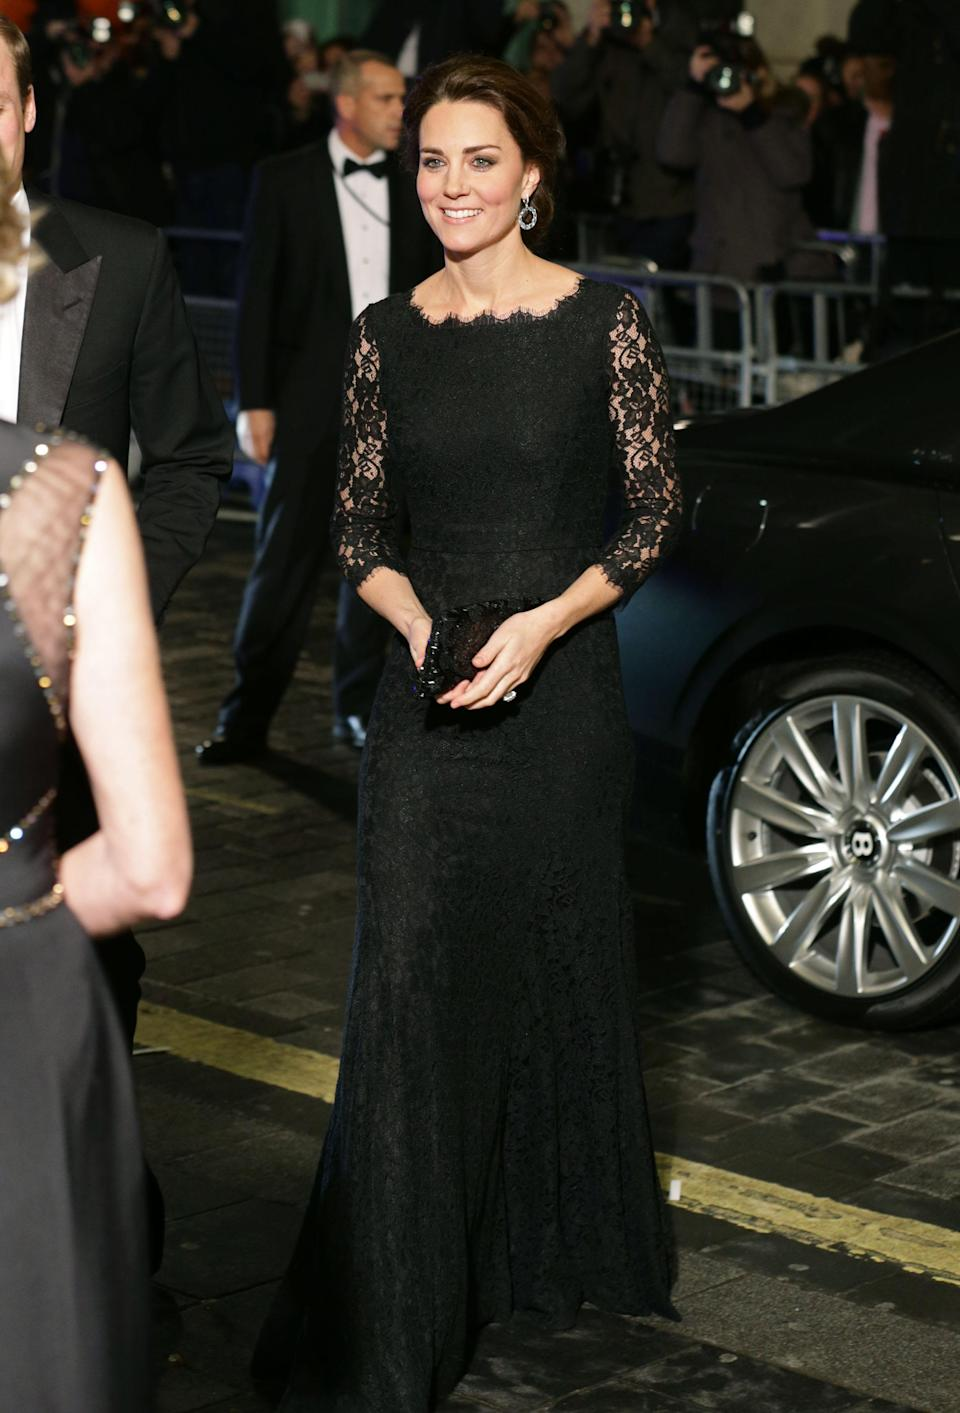 <p>Pregnant with Princess Charlotte, the Duchess of Cambridge attended the 2014 Royal Variety Performance in a lace gown by Diane Von Furstenberg. <em>[Photo: Getty]</em> </p>